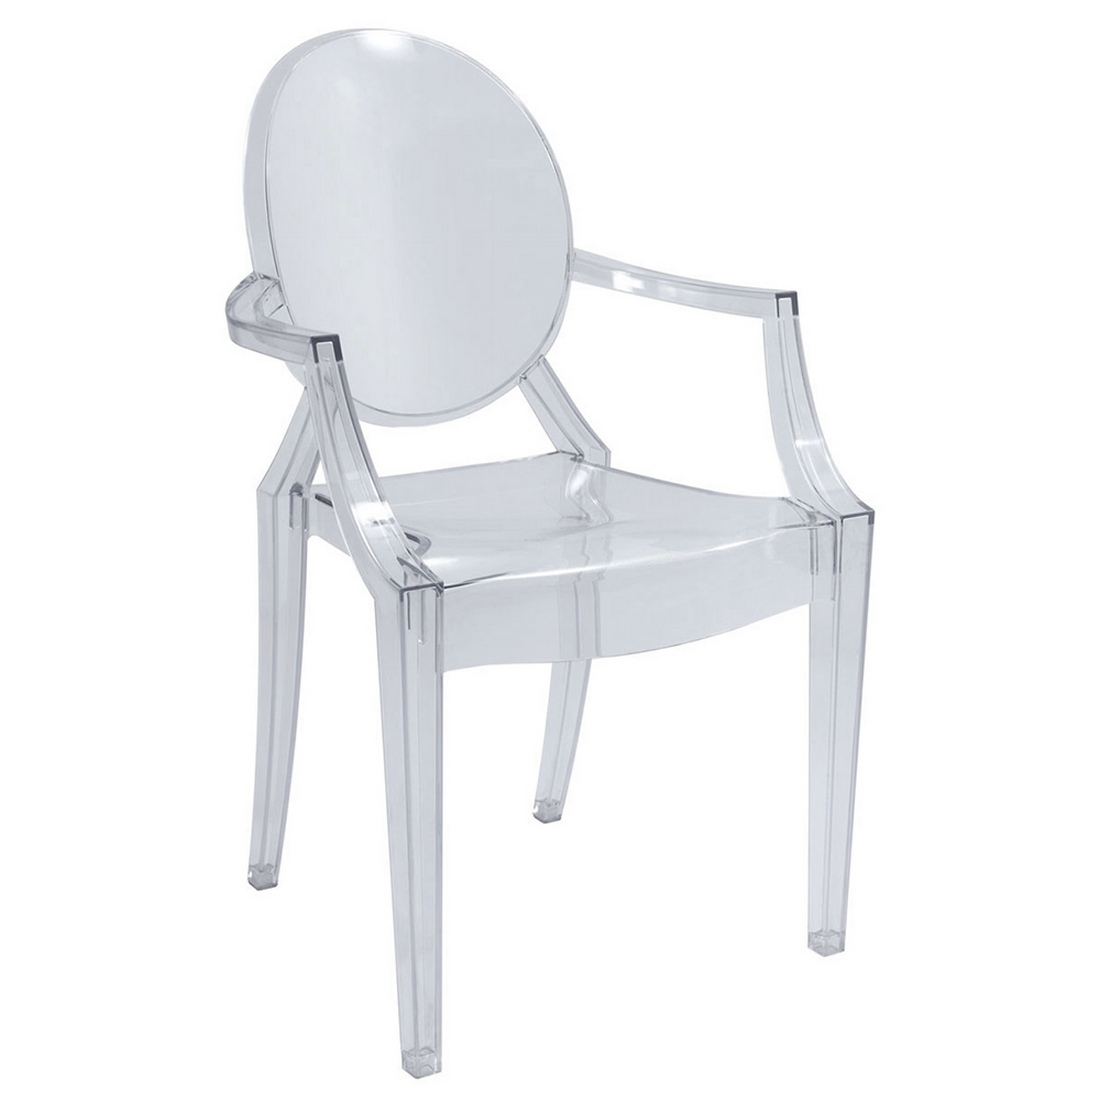 Ghost Chairs Louis Ghost Chair By Kartell The Classic Reinvented By